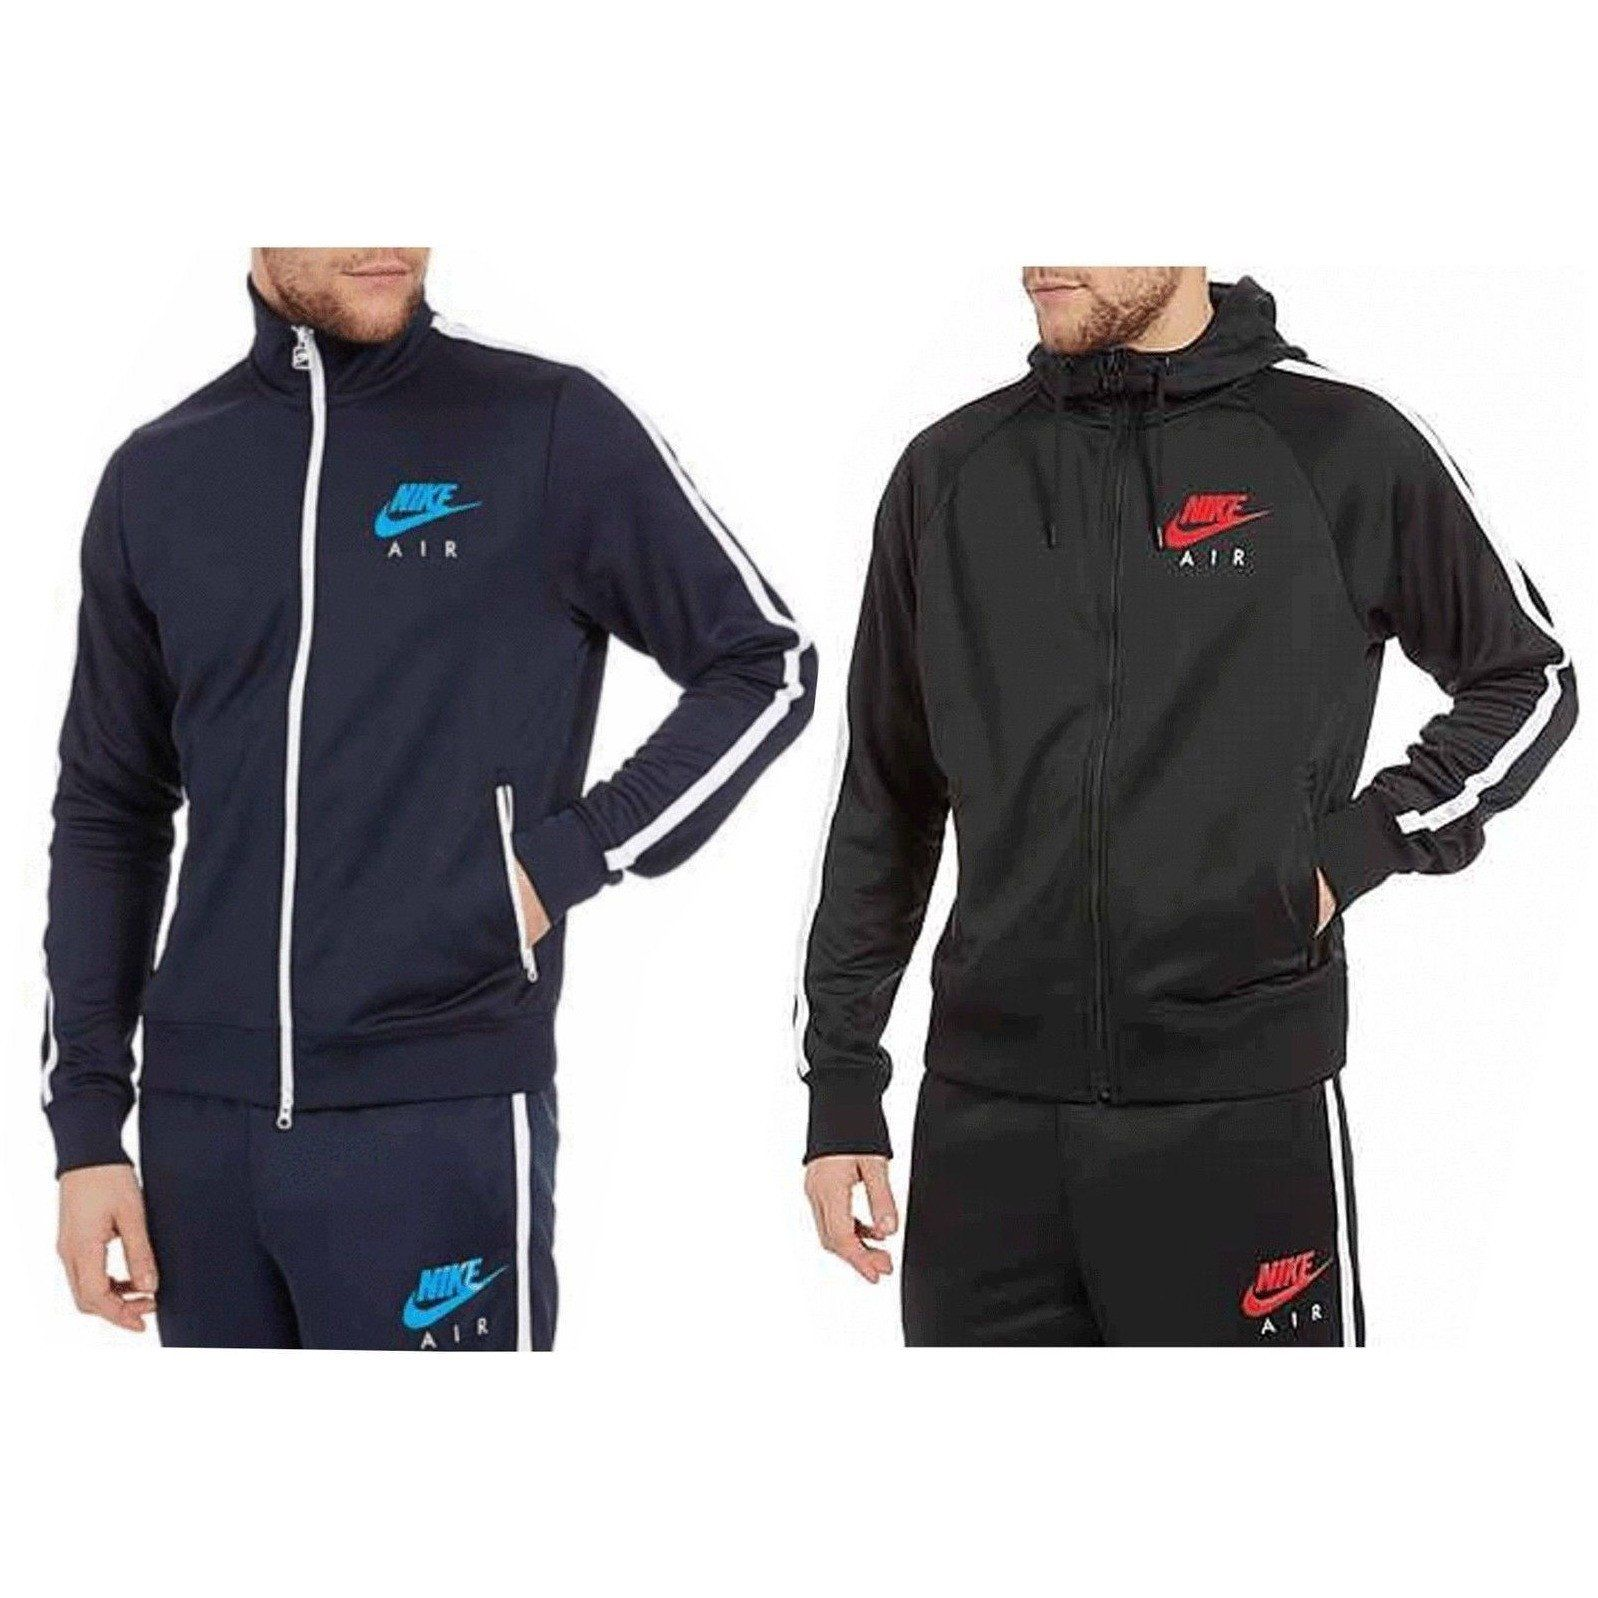 nike air limitless tracksuit #nike #health #EDGE99 #fitness